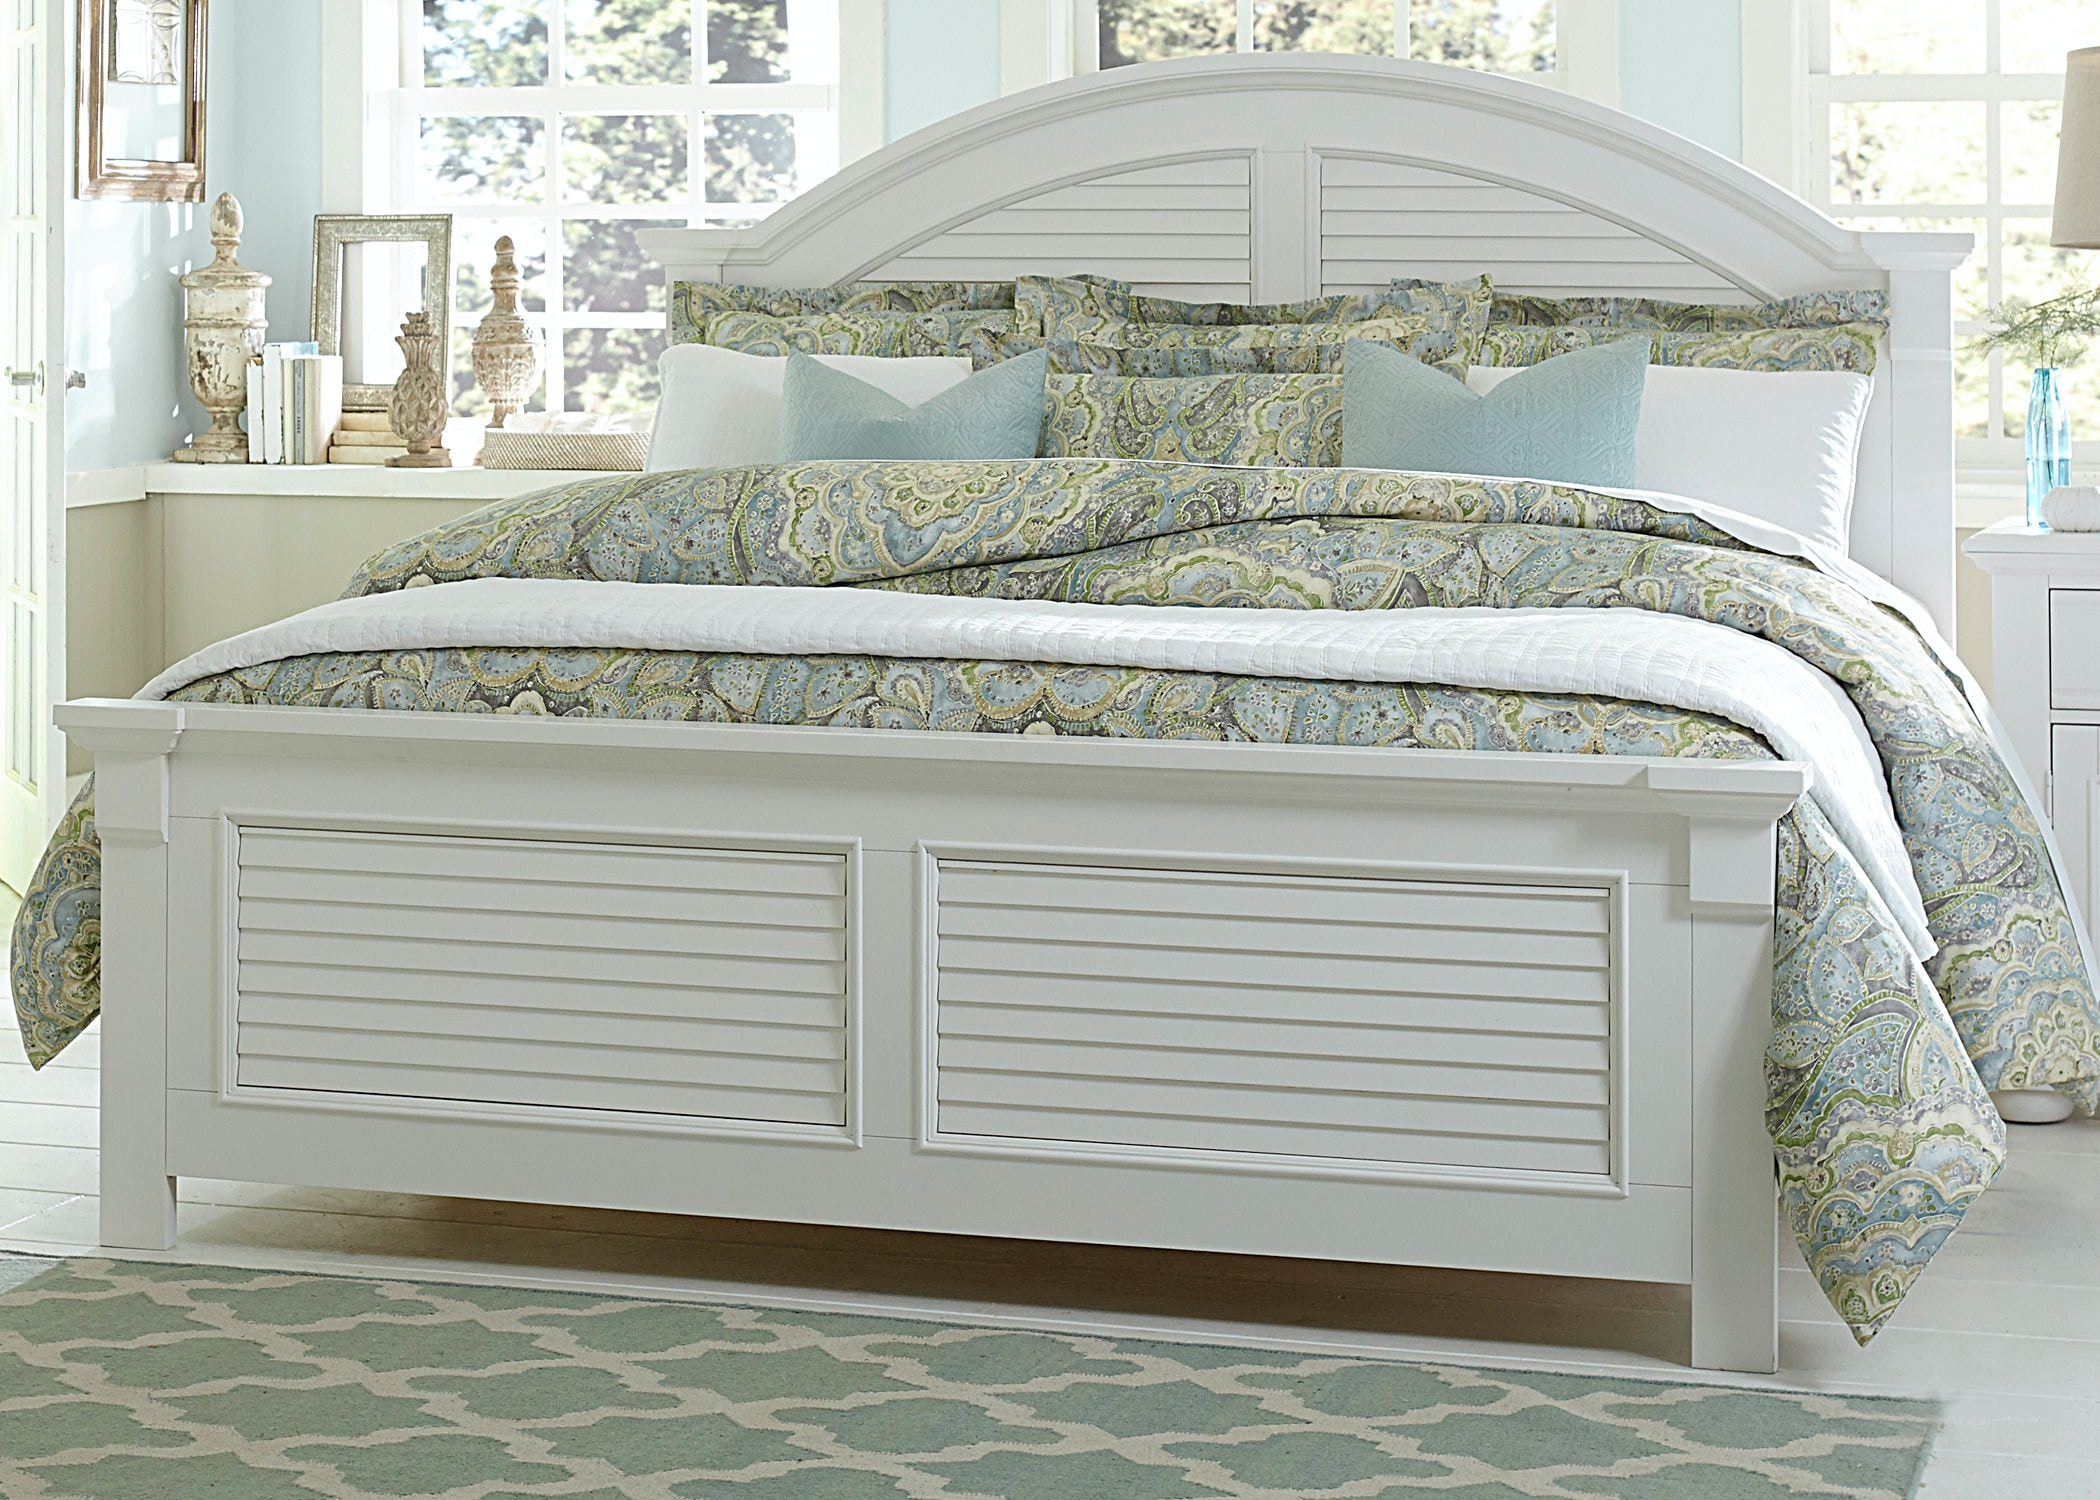 Liberty Furniture Bedroom Queen Panel Headboard 607 BR13 At Pittsfield  Furniture Co.